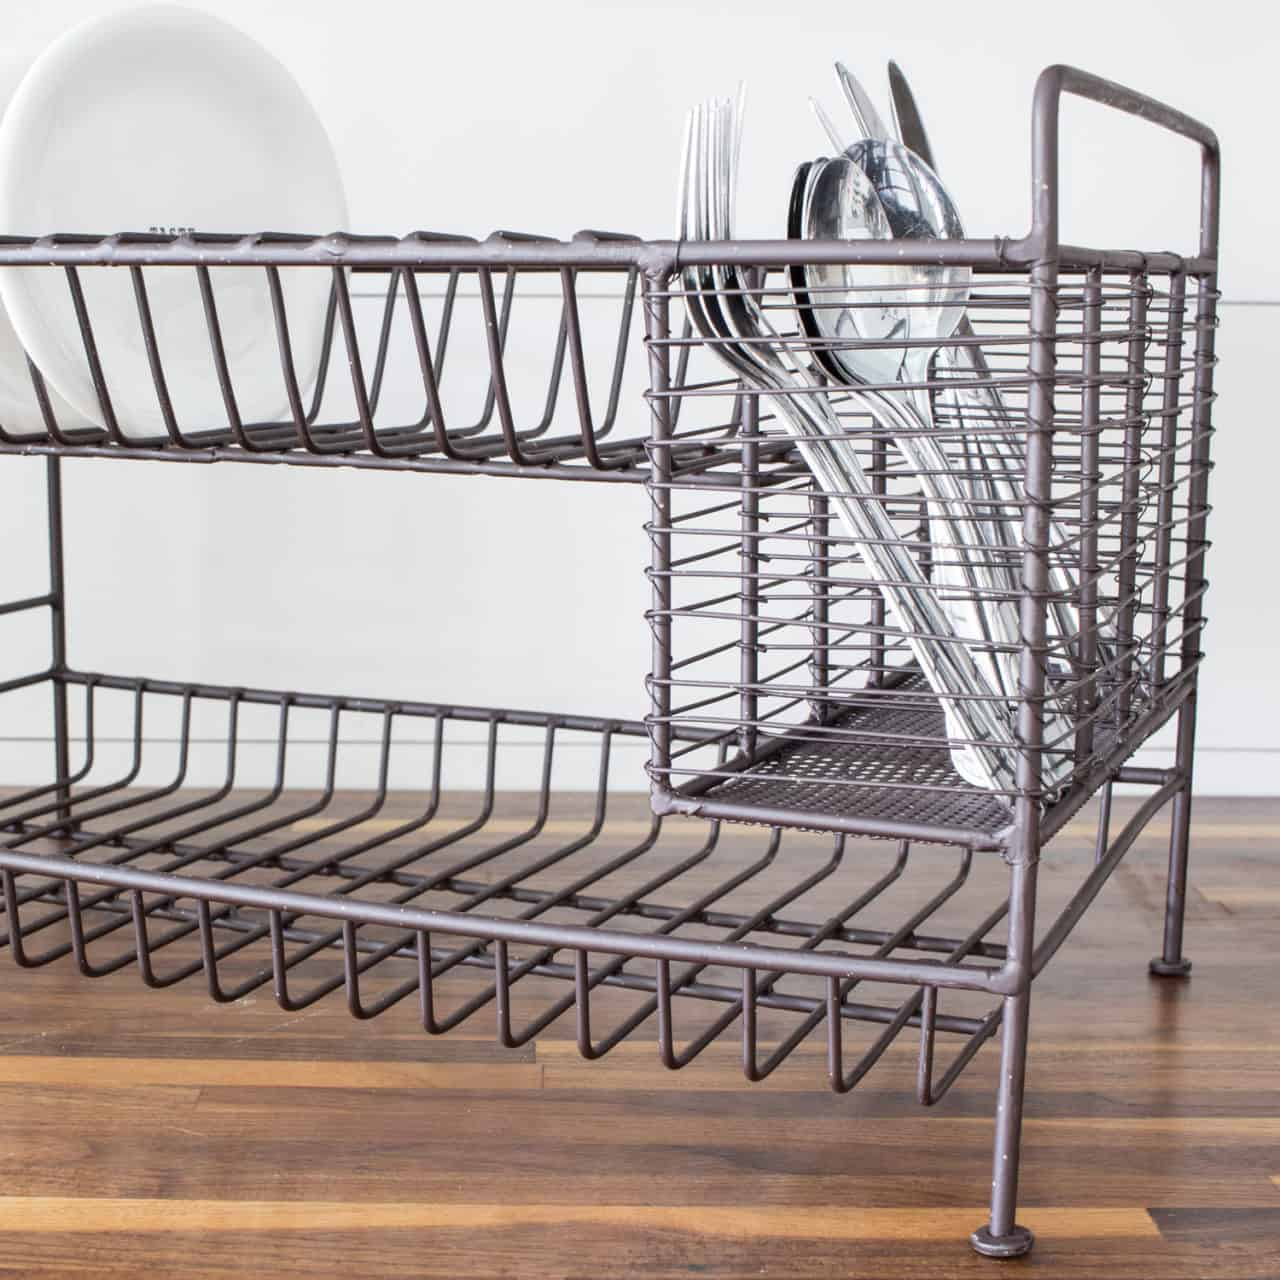 HML Dish Rack farmhouse style